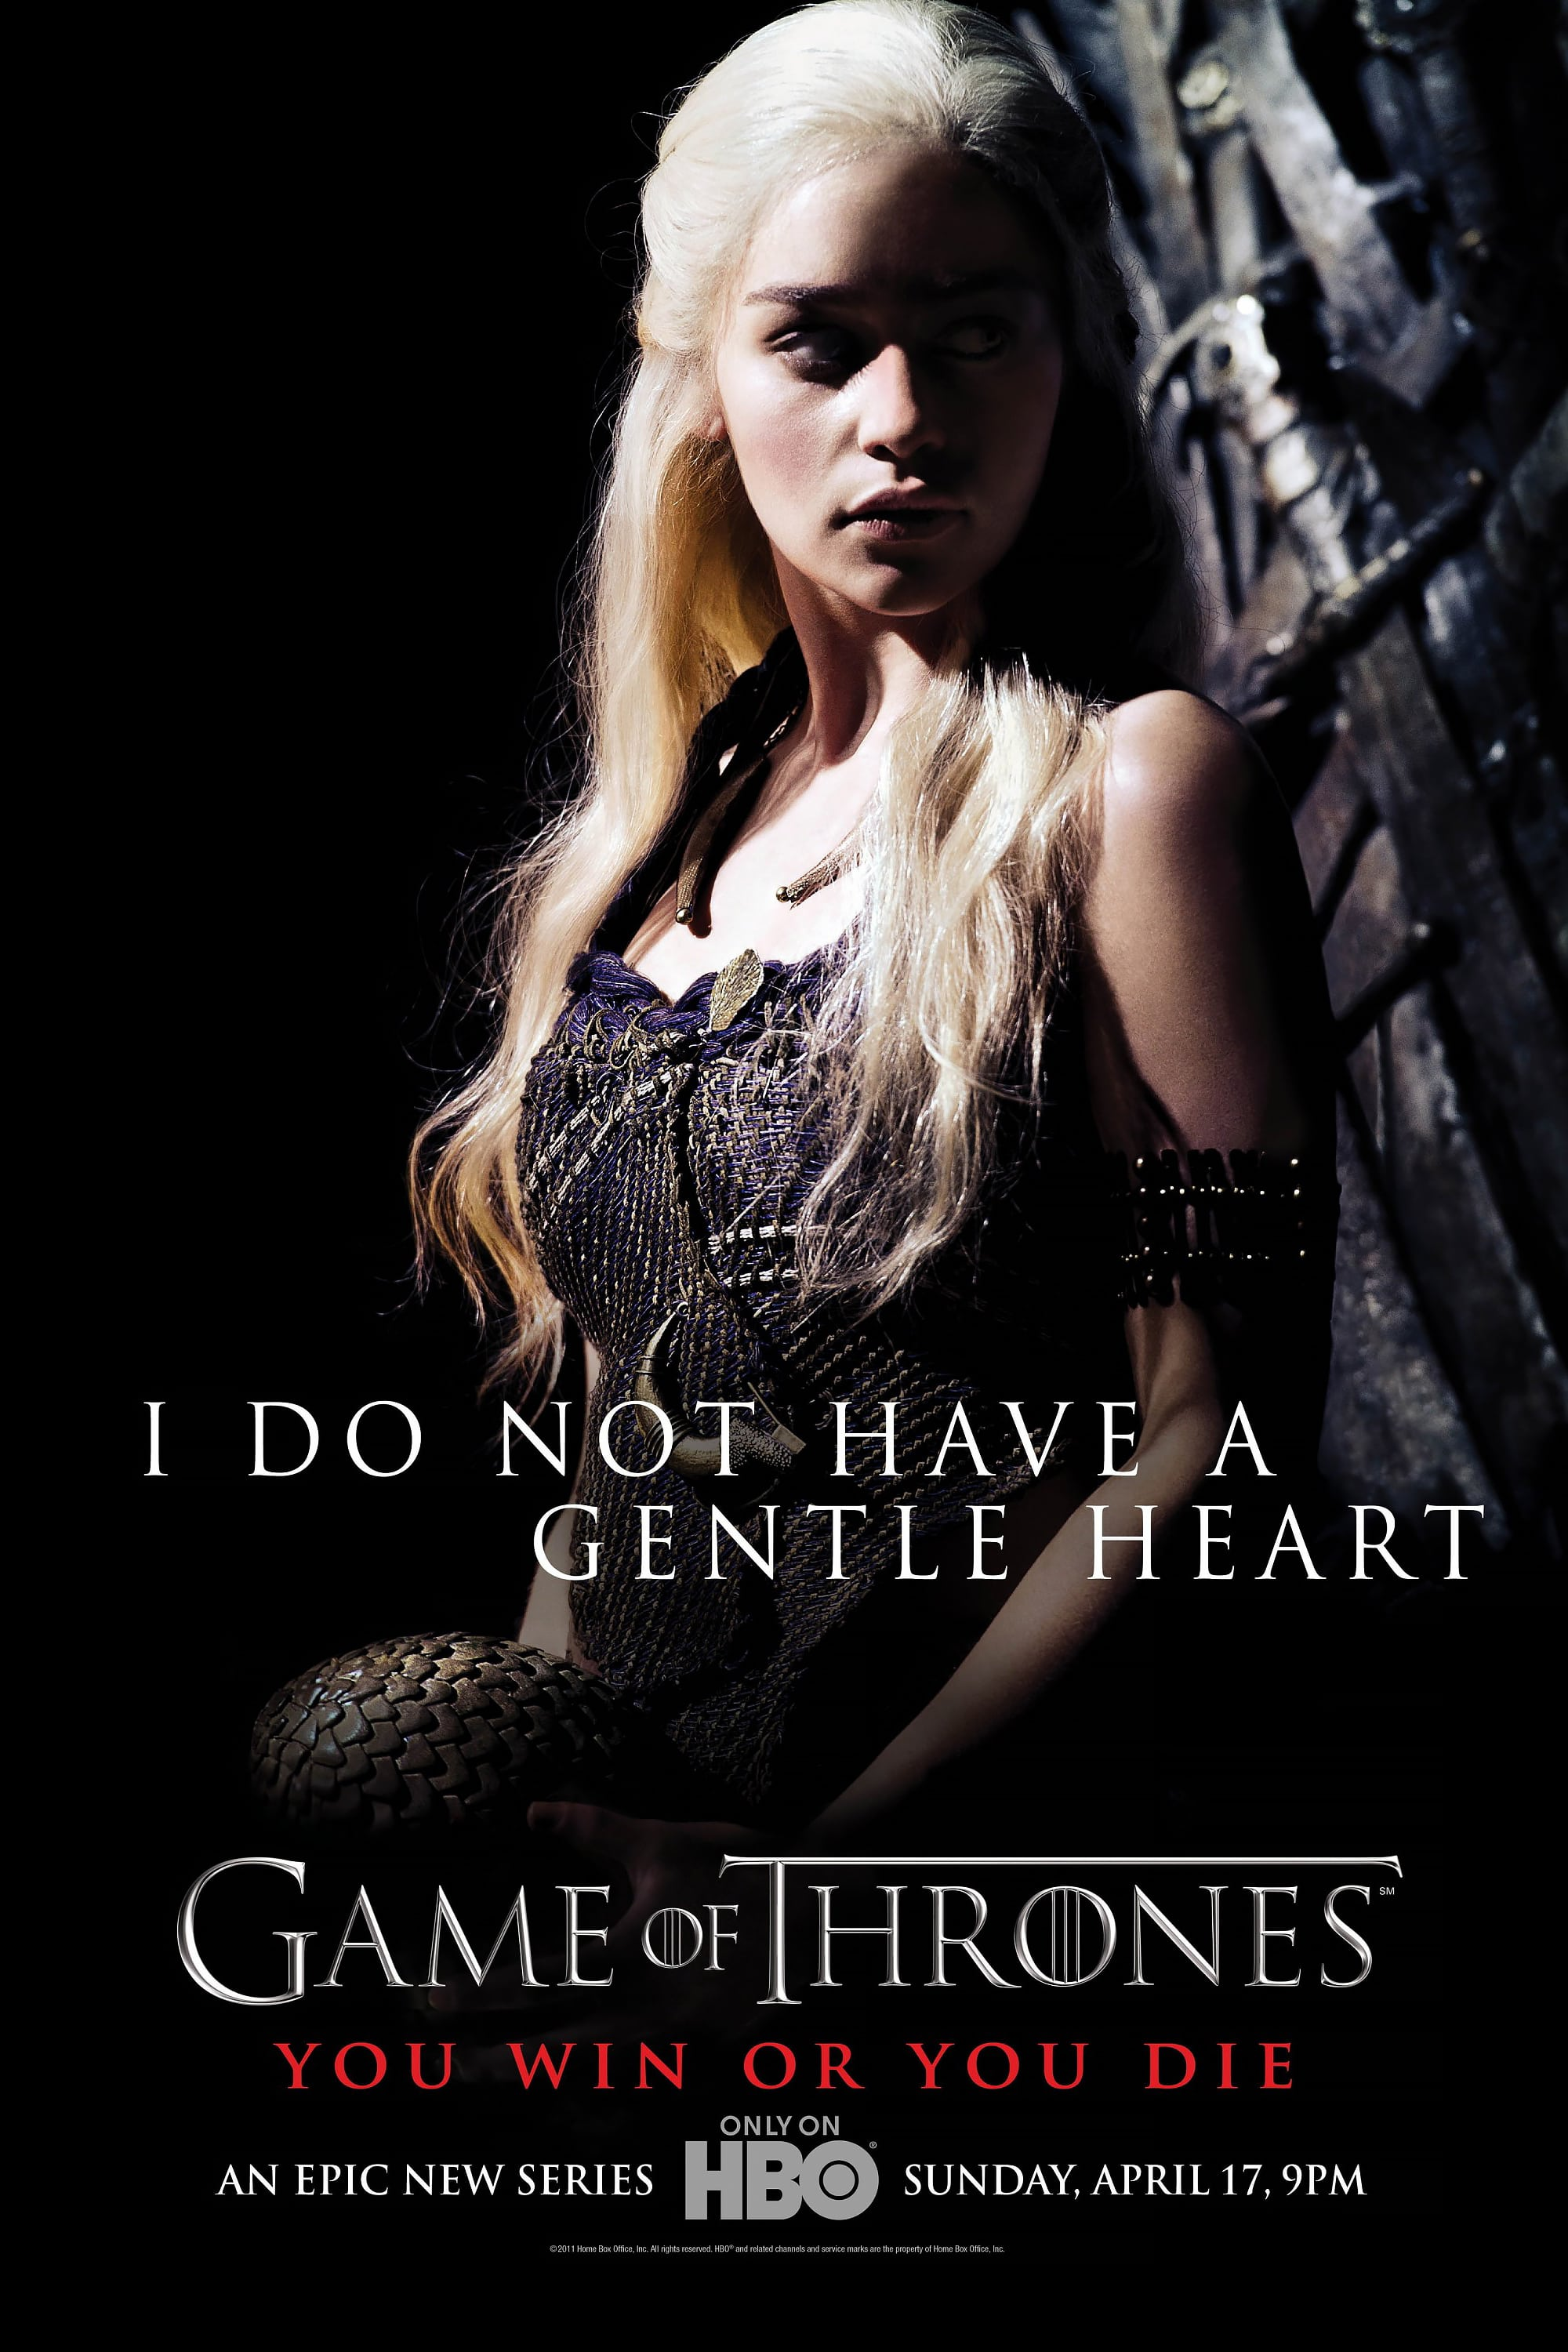 game of throne poster high quality HD printable wallpapers season 1 i do not have gentle heart